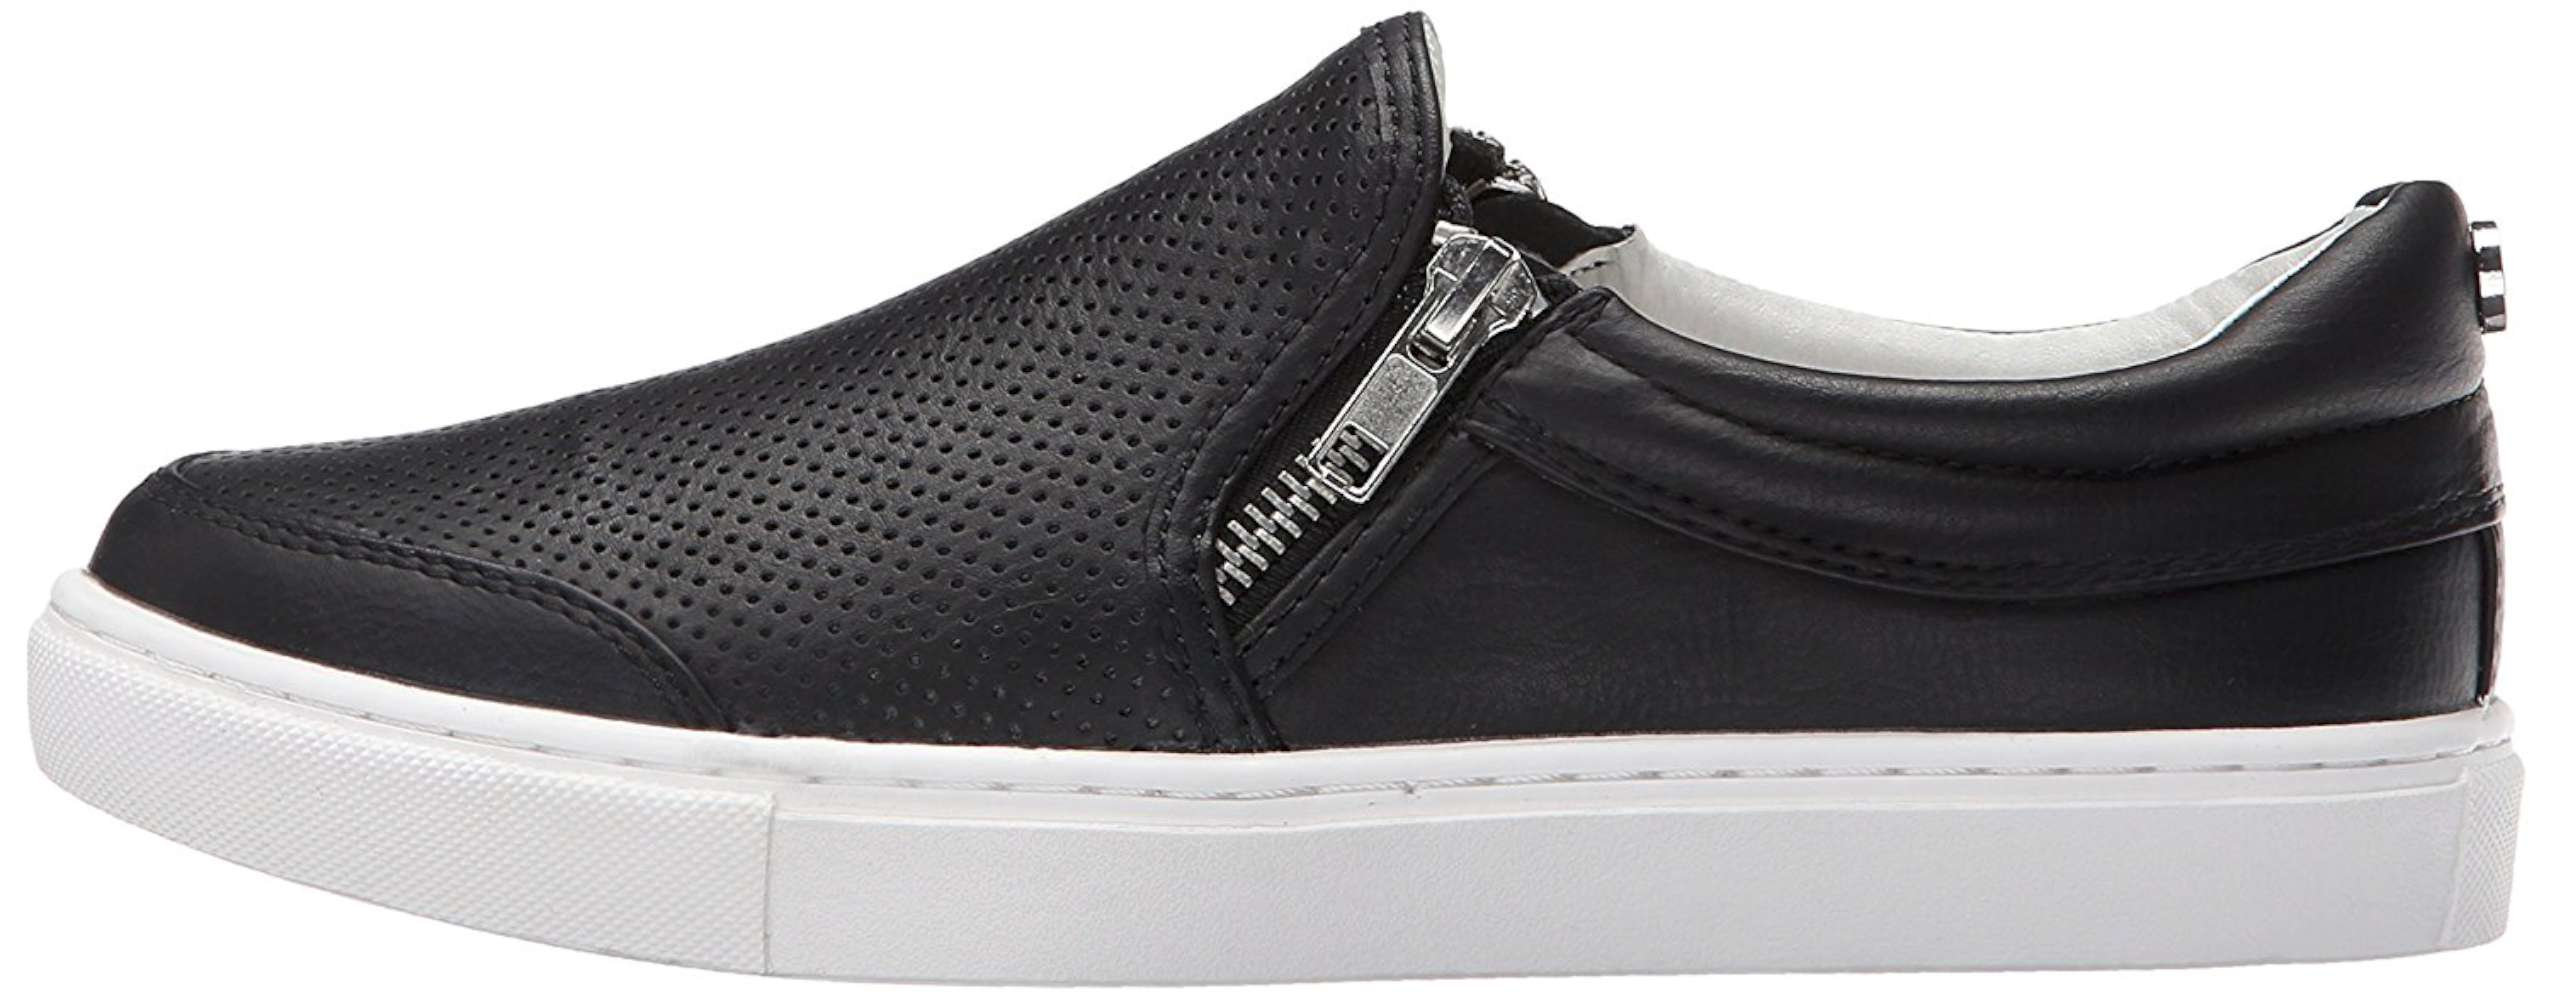 Steve Madden Womens Ellias Low Top Zipper Fashion Sneakers